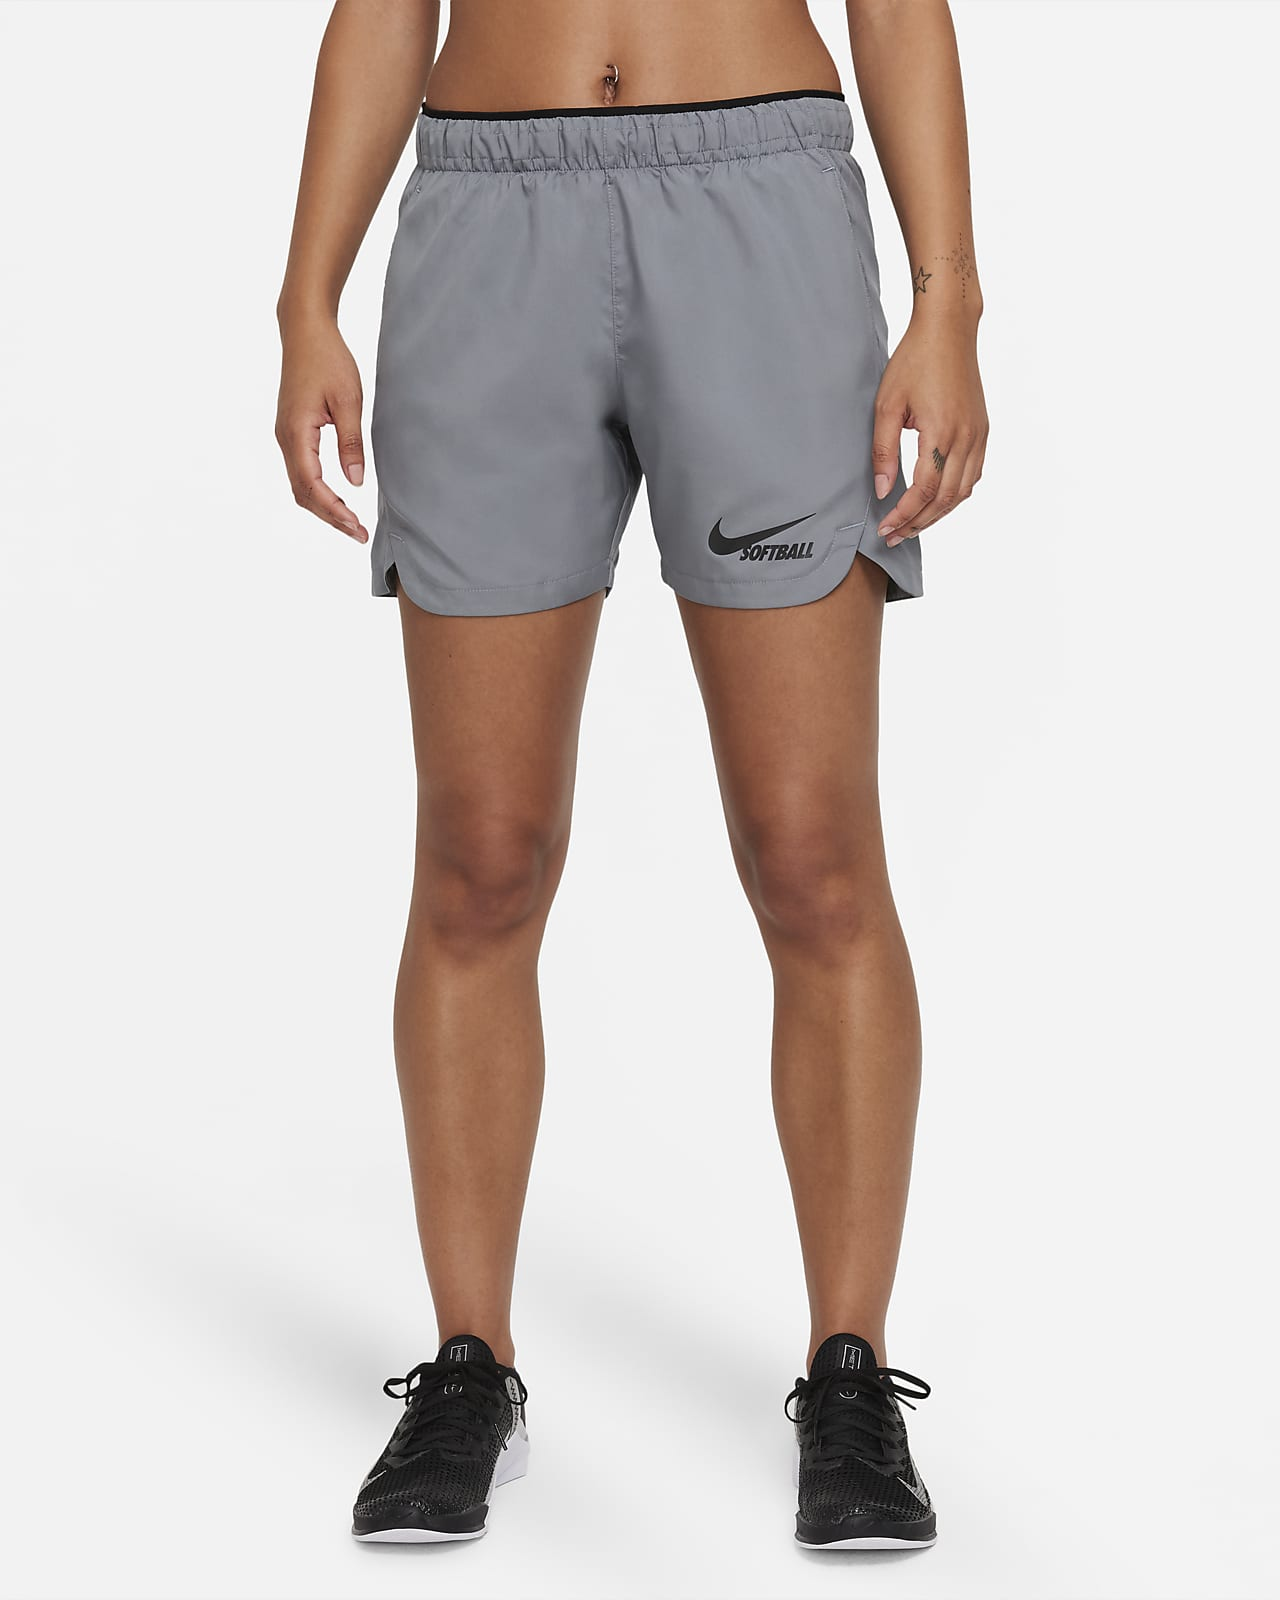 Nike Dri Fit Women S Softball Shorts Nike Com The wide racerback style lets you move freely during your workout, while the wide. nike dri fit women s softball shorts